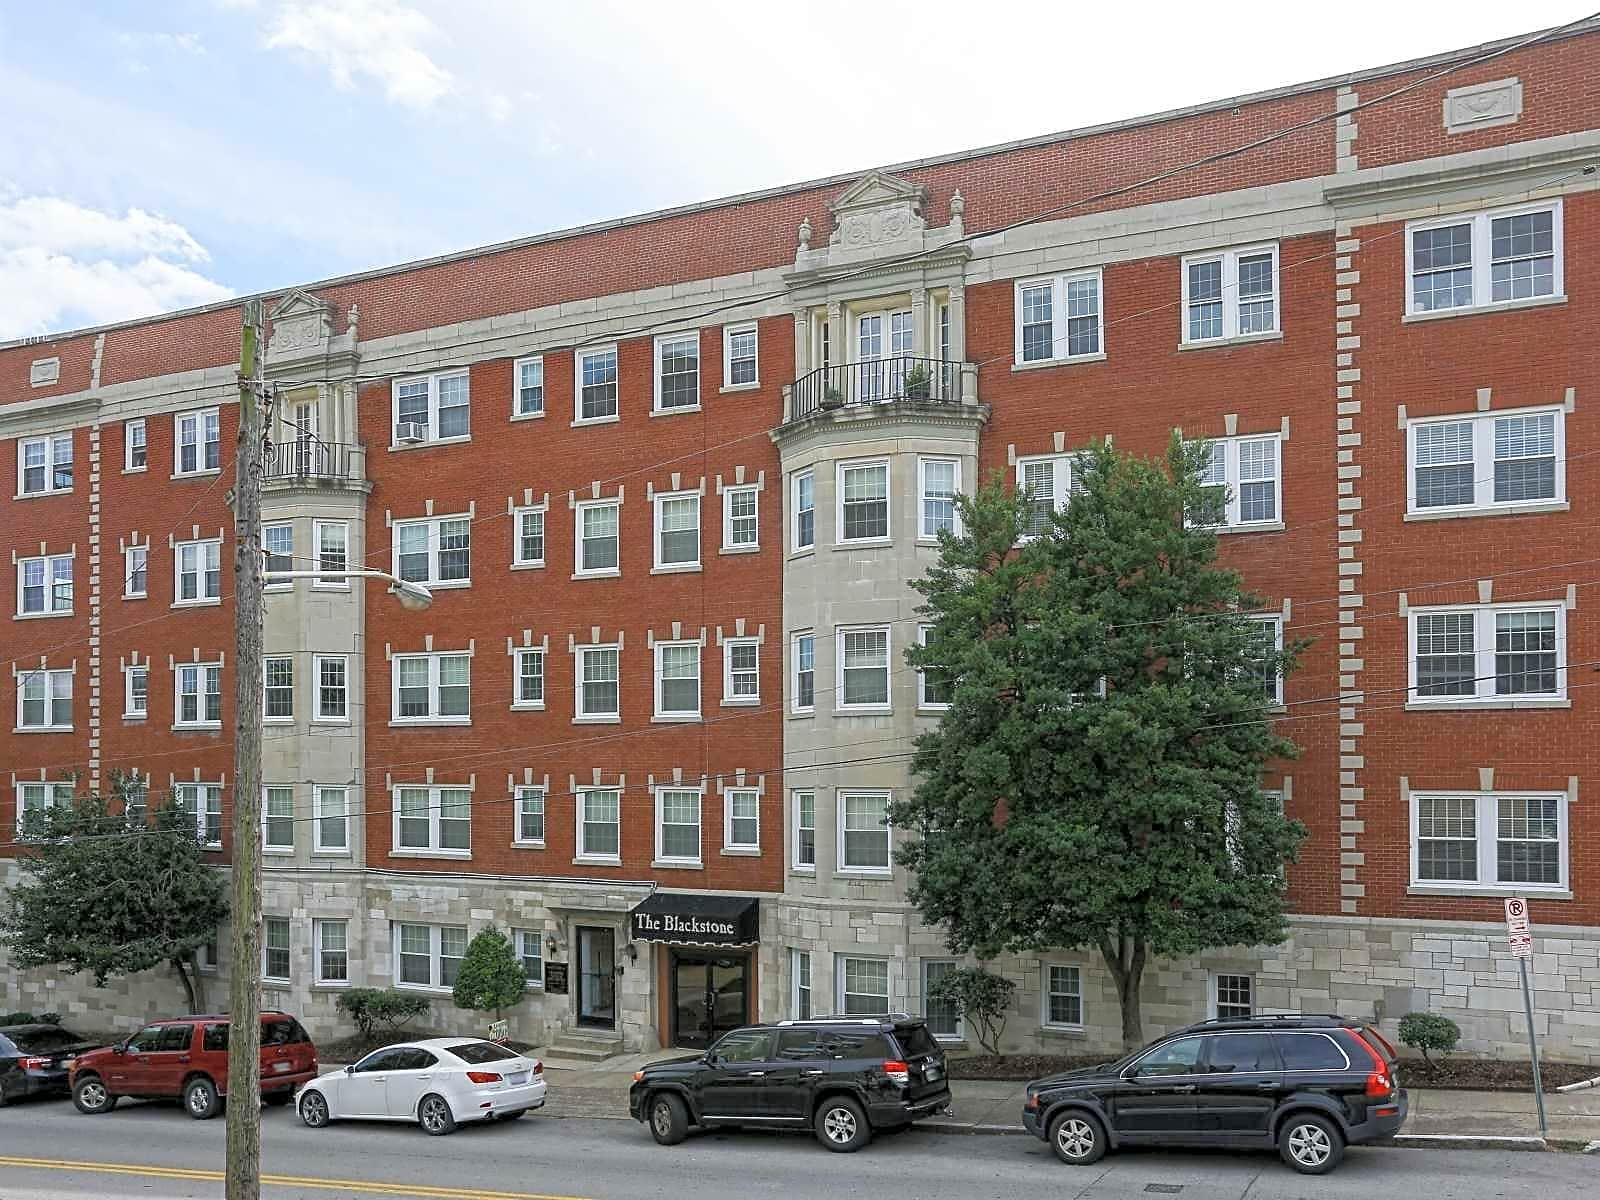 Blackstone, Fairmont & Lee Apartments  Nashville, Tn 37203. Carpet Cleaning Ogden Utah Midwest Eye Center. National Art Association Margill Loan Manager. Climate Controlled Storage El Paso. Foundation Repair Shreveport. Bone Dry Roofing Cincinnati Online Crm Free. Sponsor A Child In China Jimmy Jazz The Clash. Pharmacy Technician Registration. Largest Wealth Management Firms